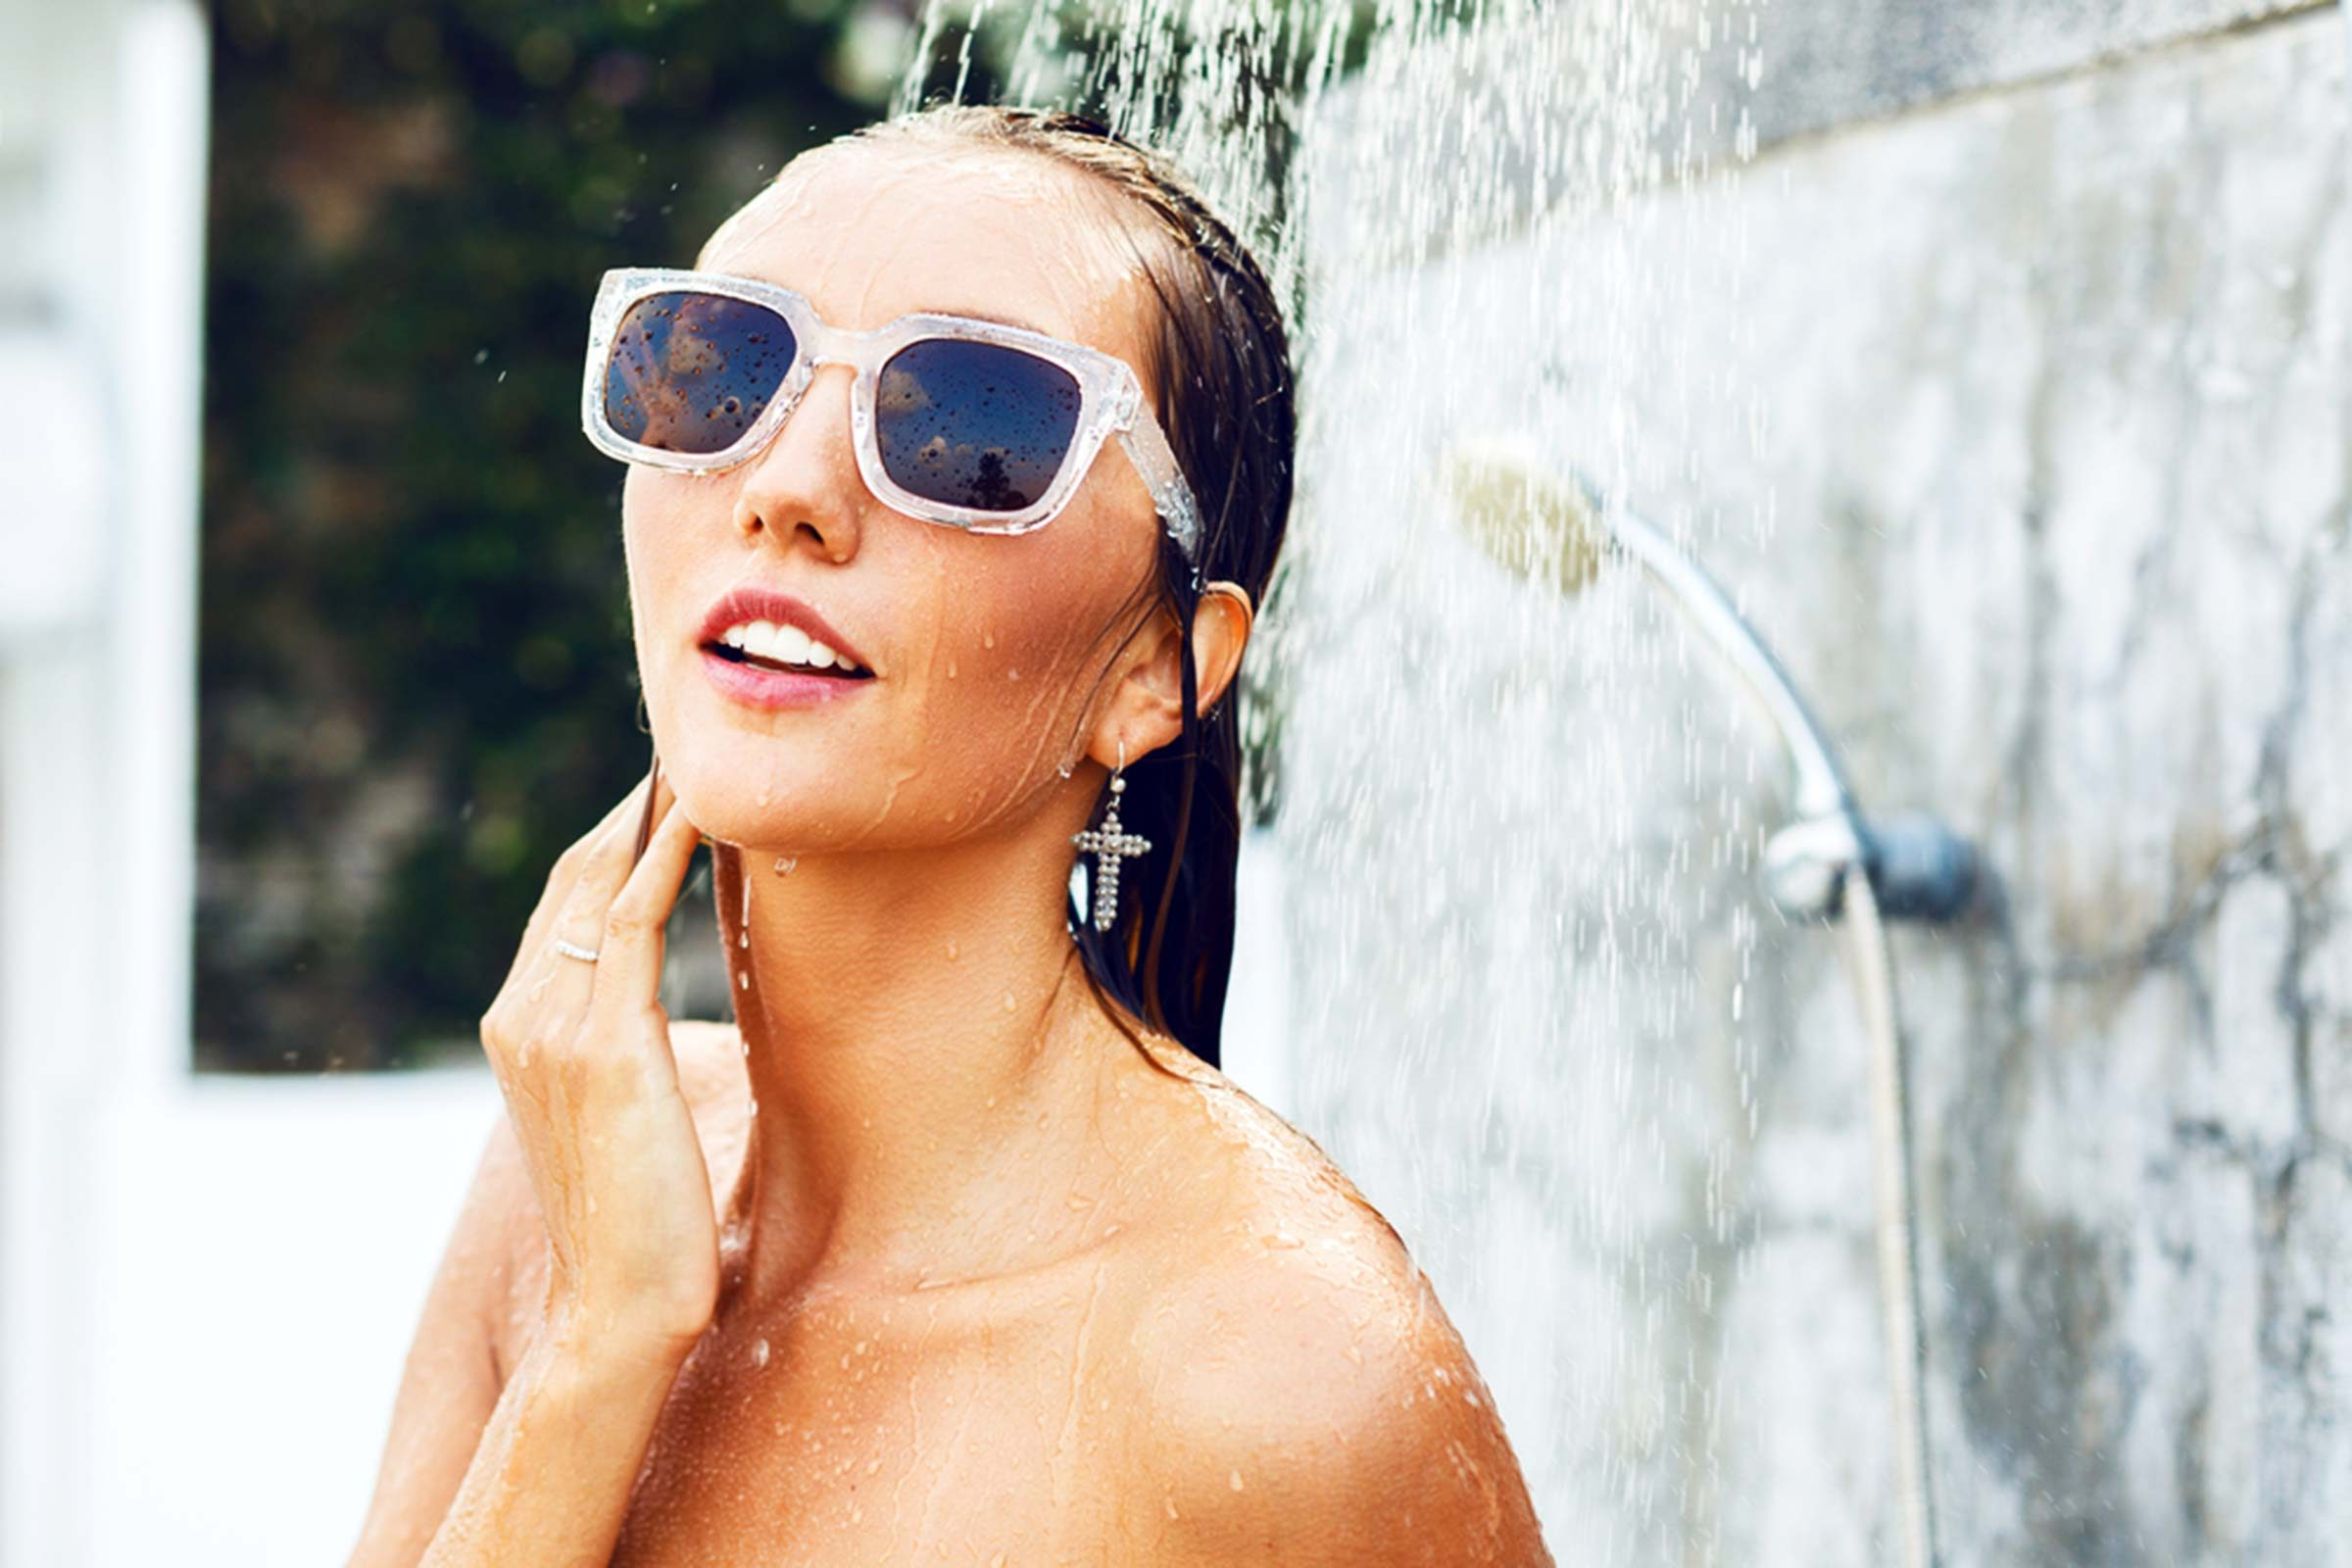 woman wearing sunglasses in an outdoor shower